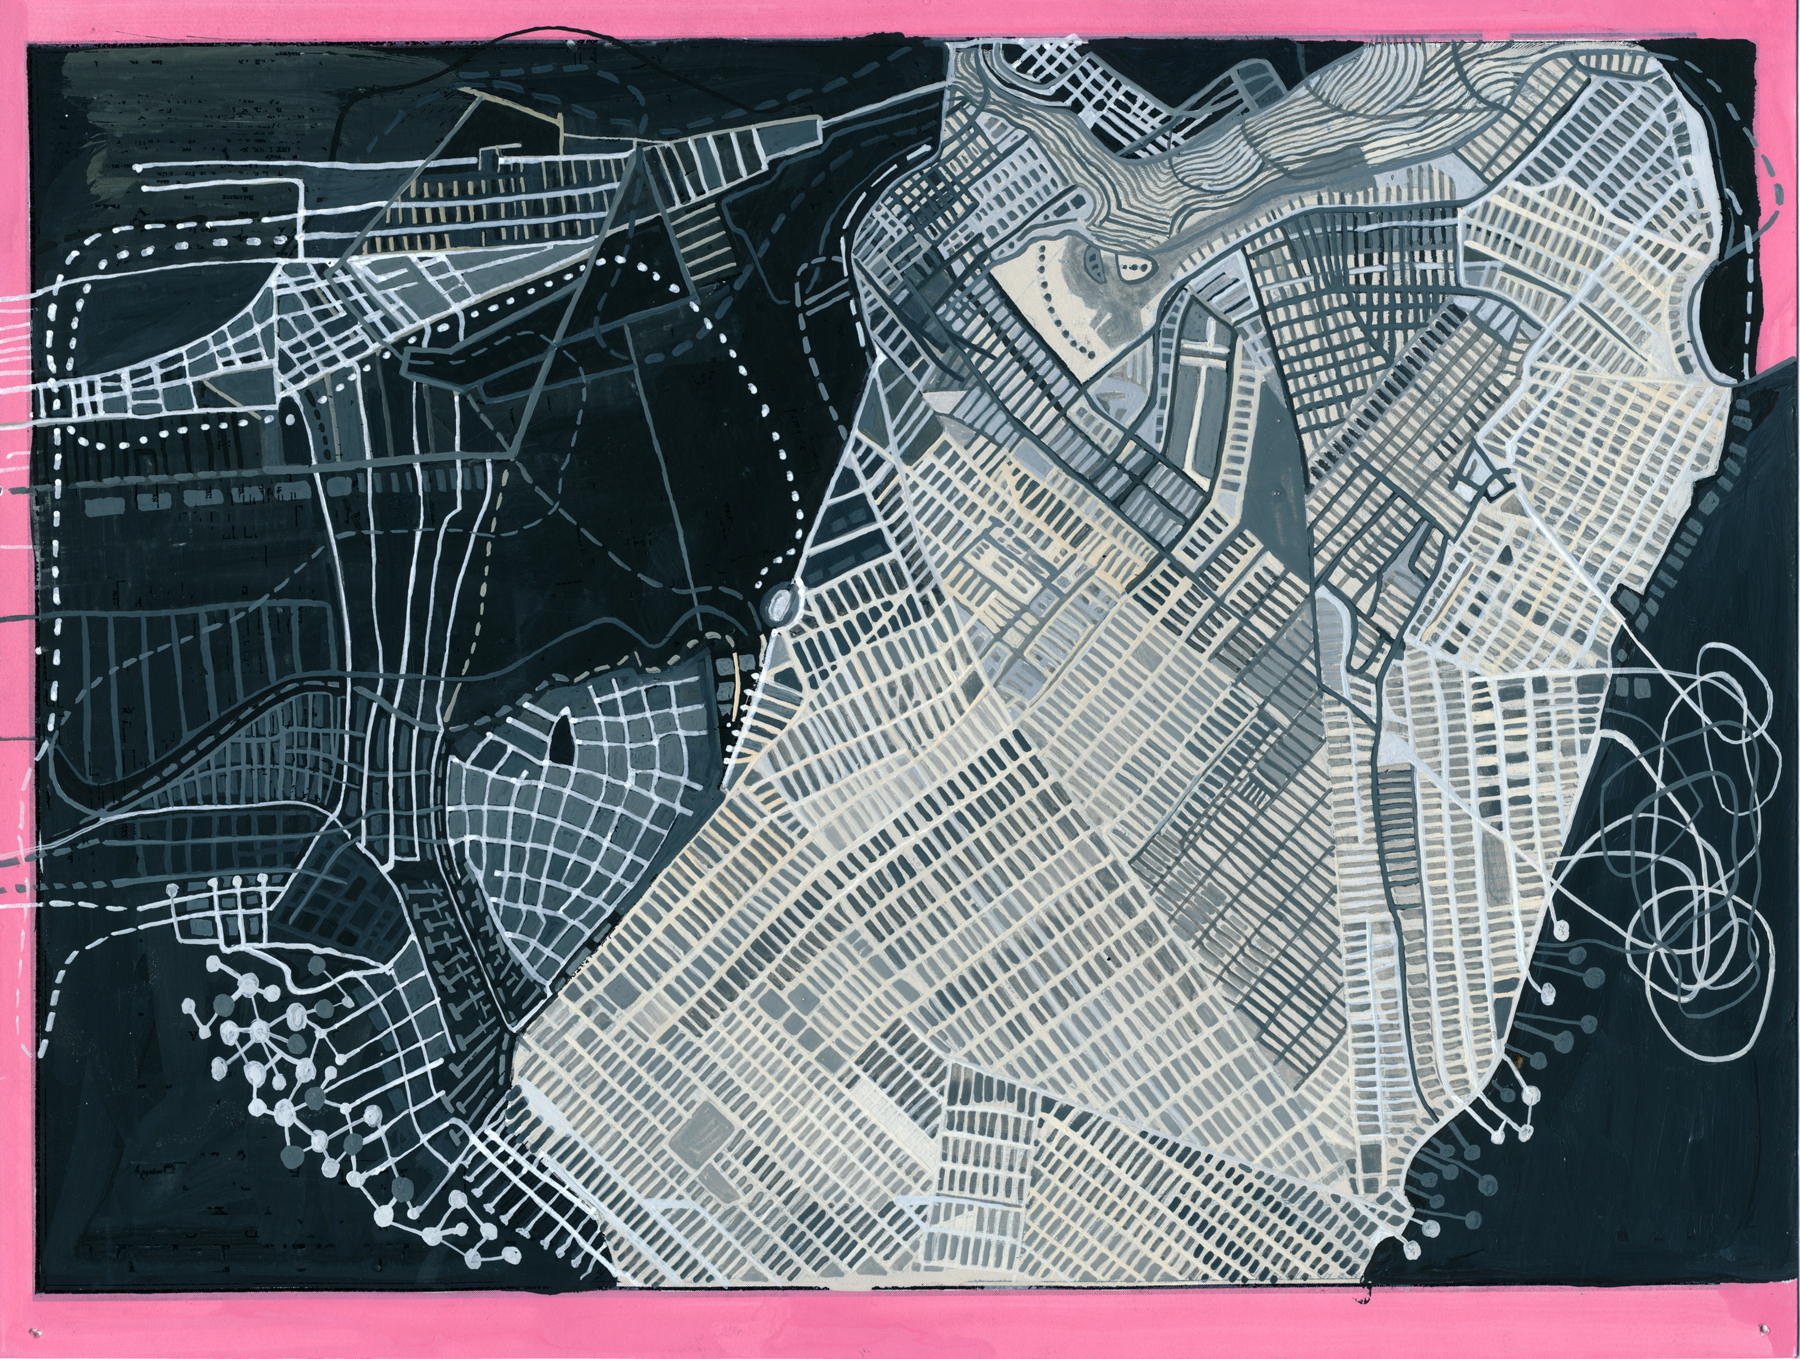 Re Imagining Brooklyn, 2016, watercolor, gouache, shellac ink and walnut ink, digital print on archival paper, 8.5 x 11 inches